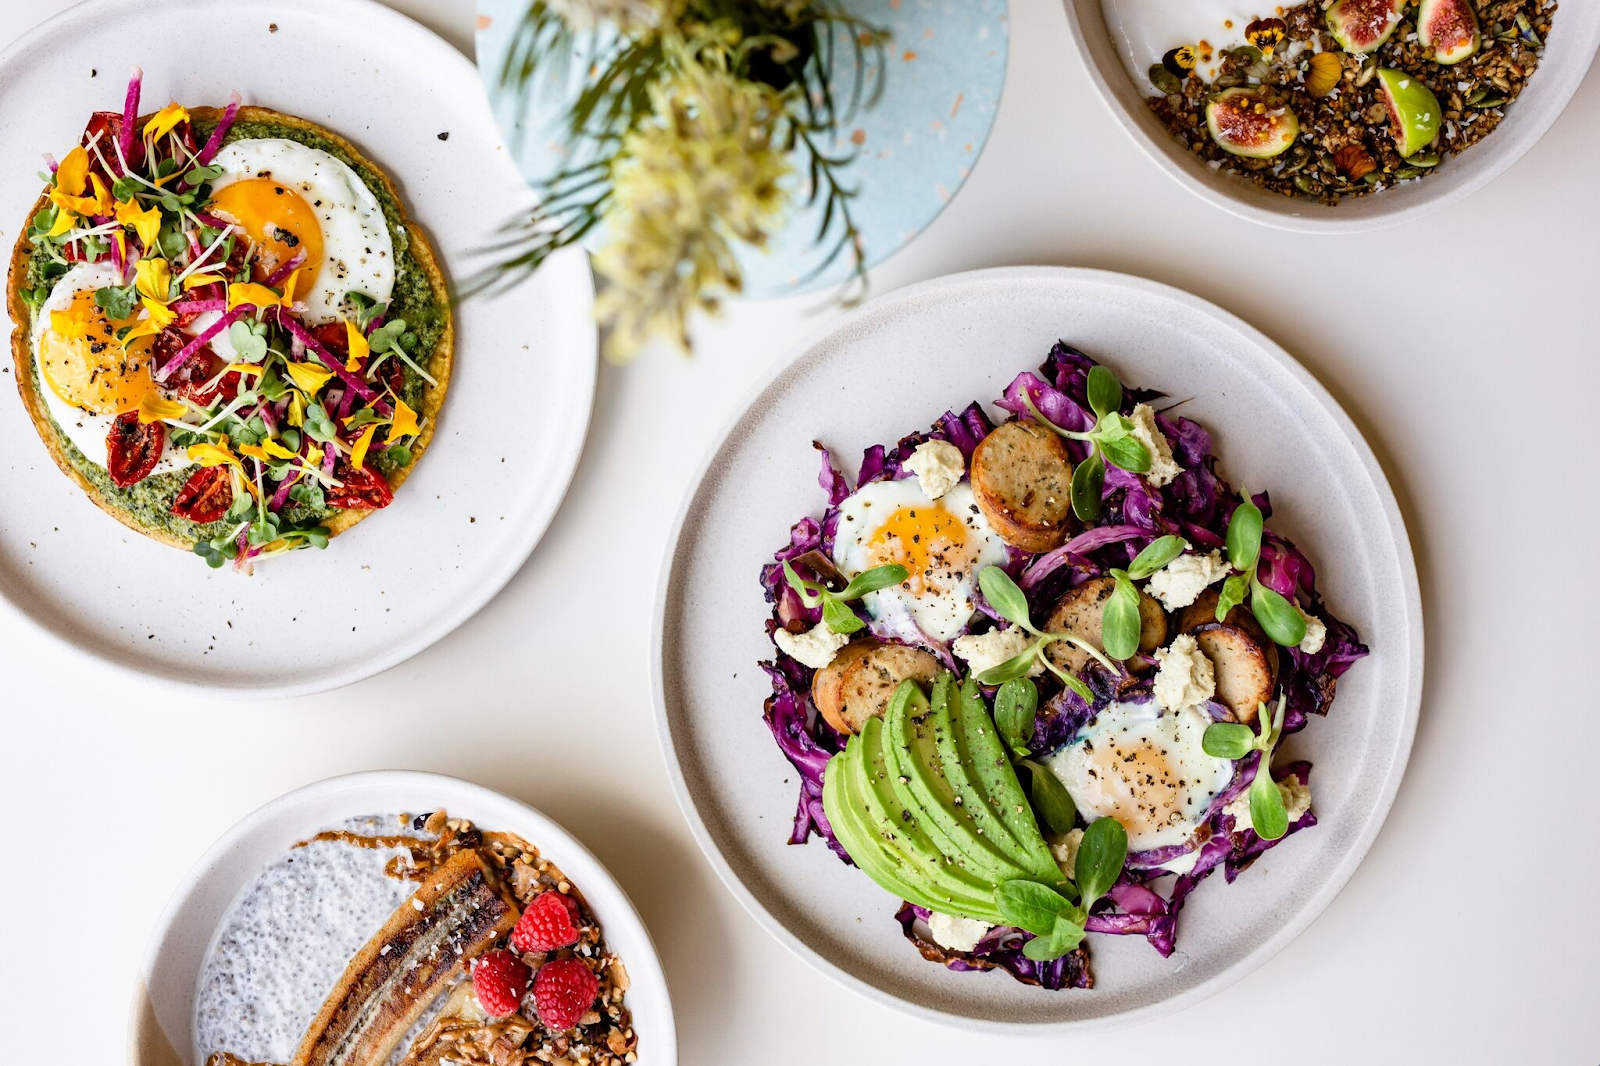 Vibrant's aesthetically pleasing dishes